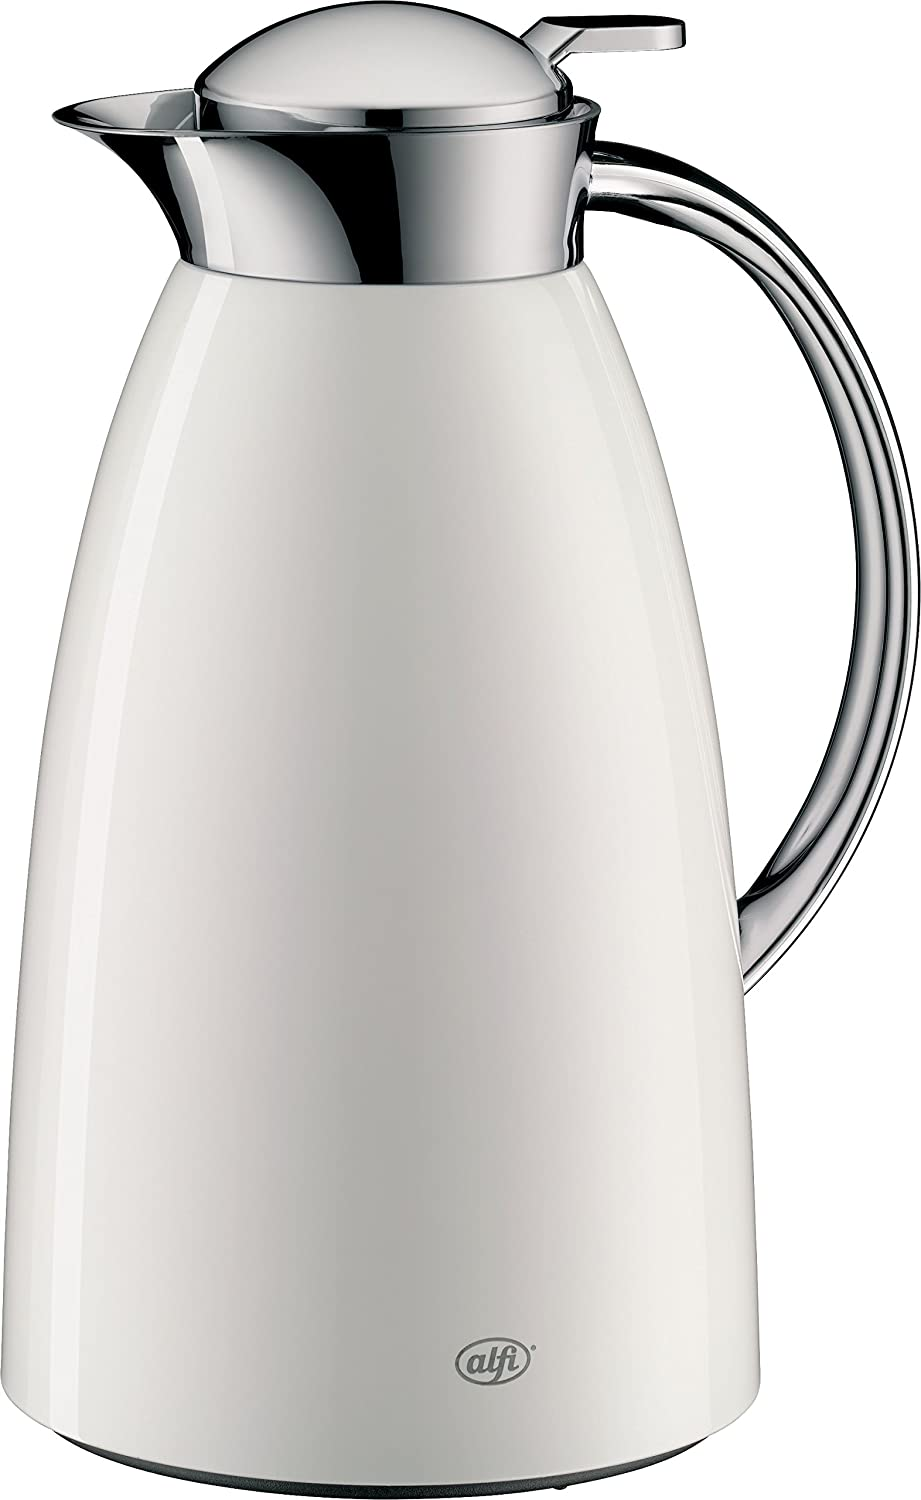 alfi Gusto Glass Vacuum Lacquered Metal Thermal Carafe for Hot and Cold Beverages, 1.0 L, White 71ILwlaT1mL